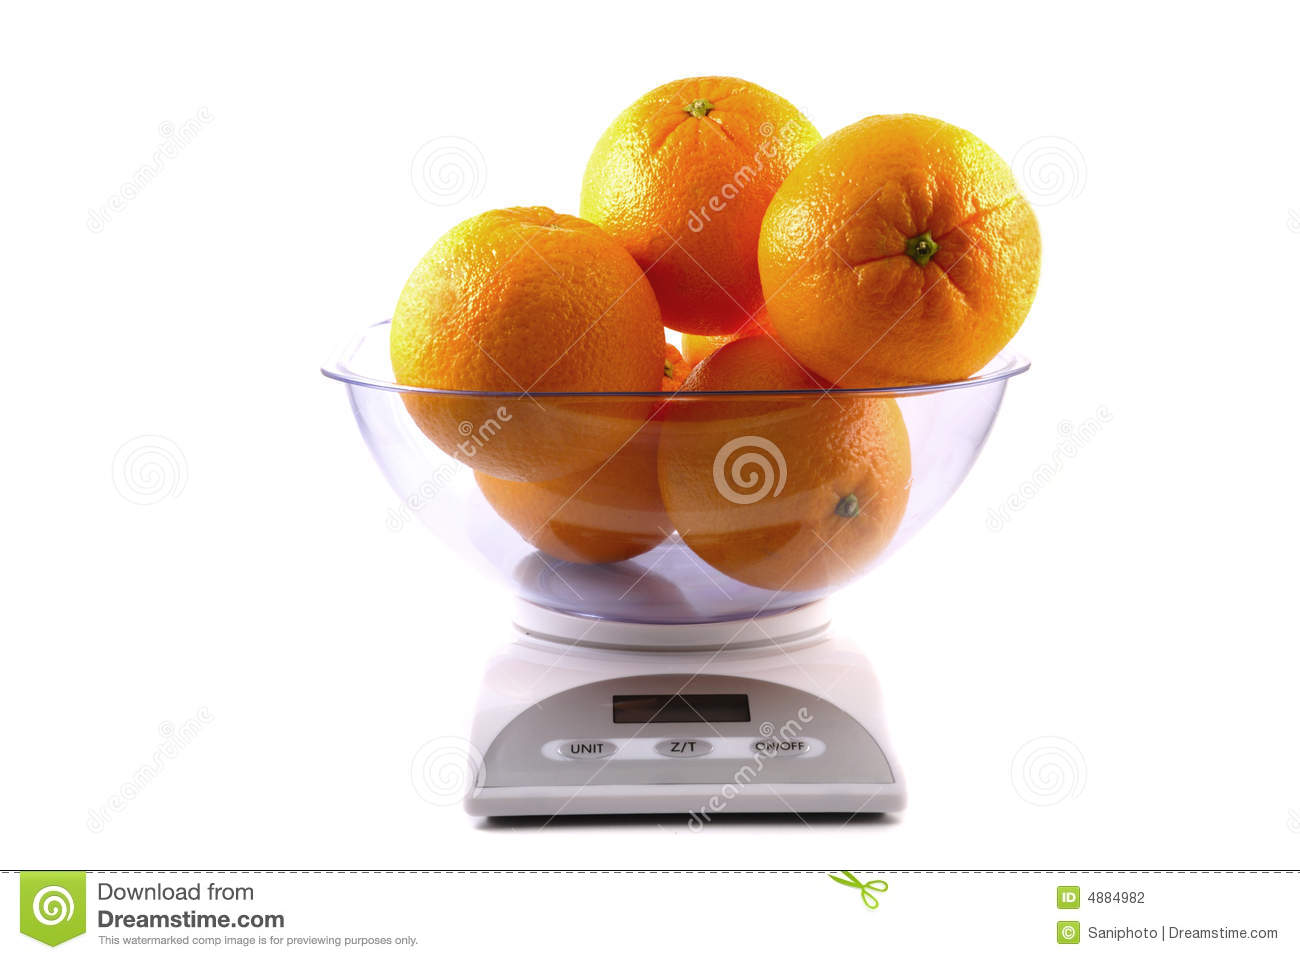 Kitchen Scale With Oranges Stock Photo  Image Of Weight